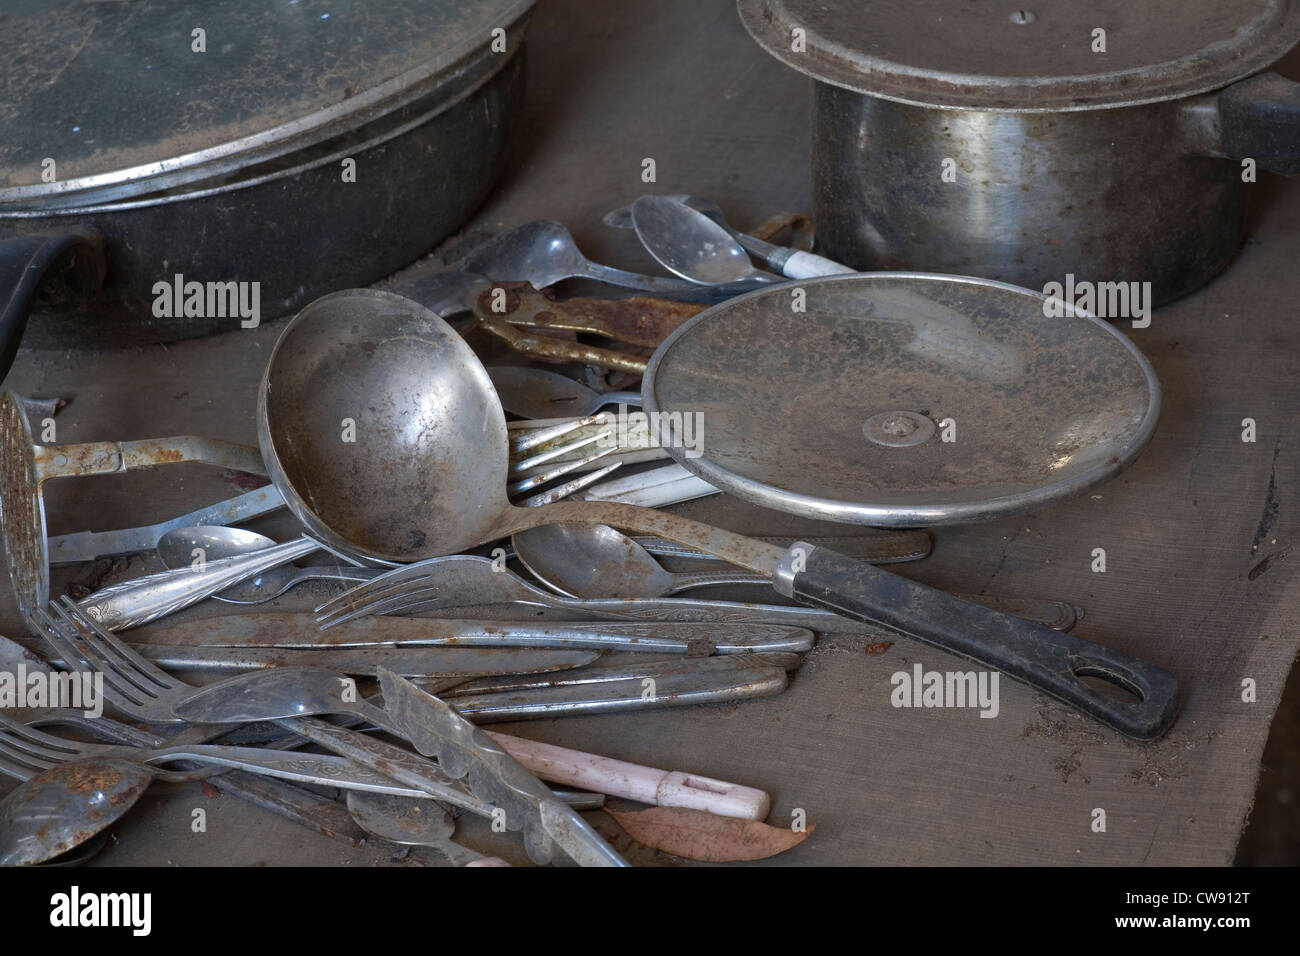 Rusty and dirty old kitchen utensils in a long abandoned shack. Stock Photo